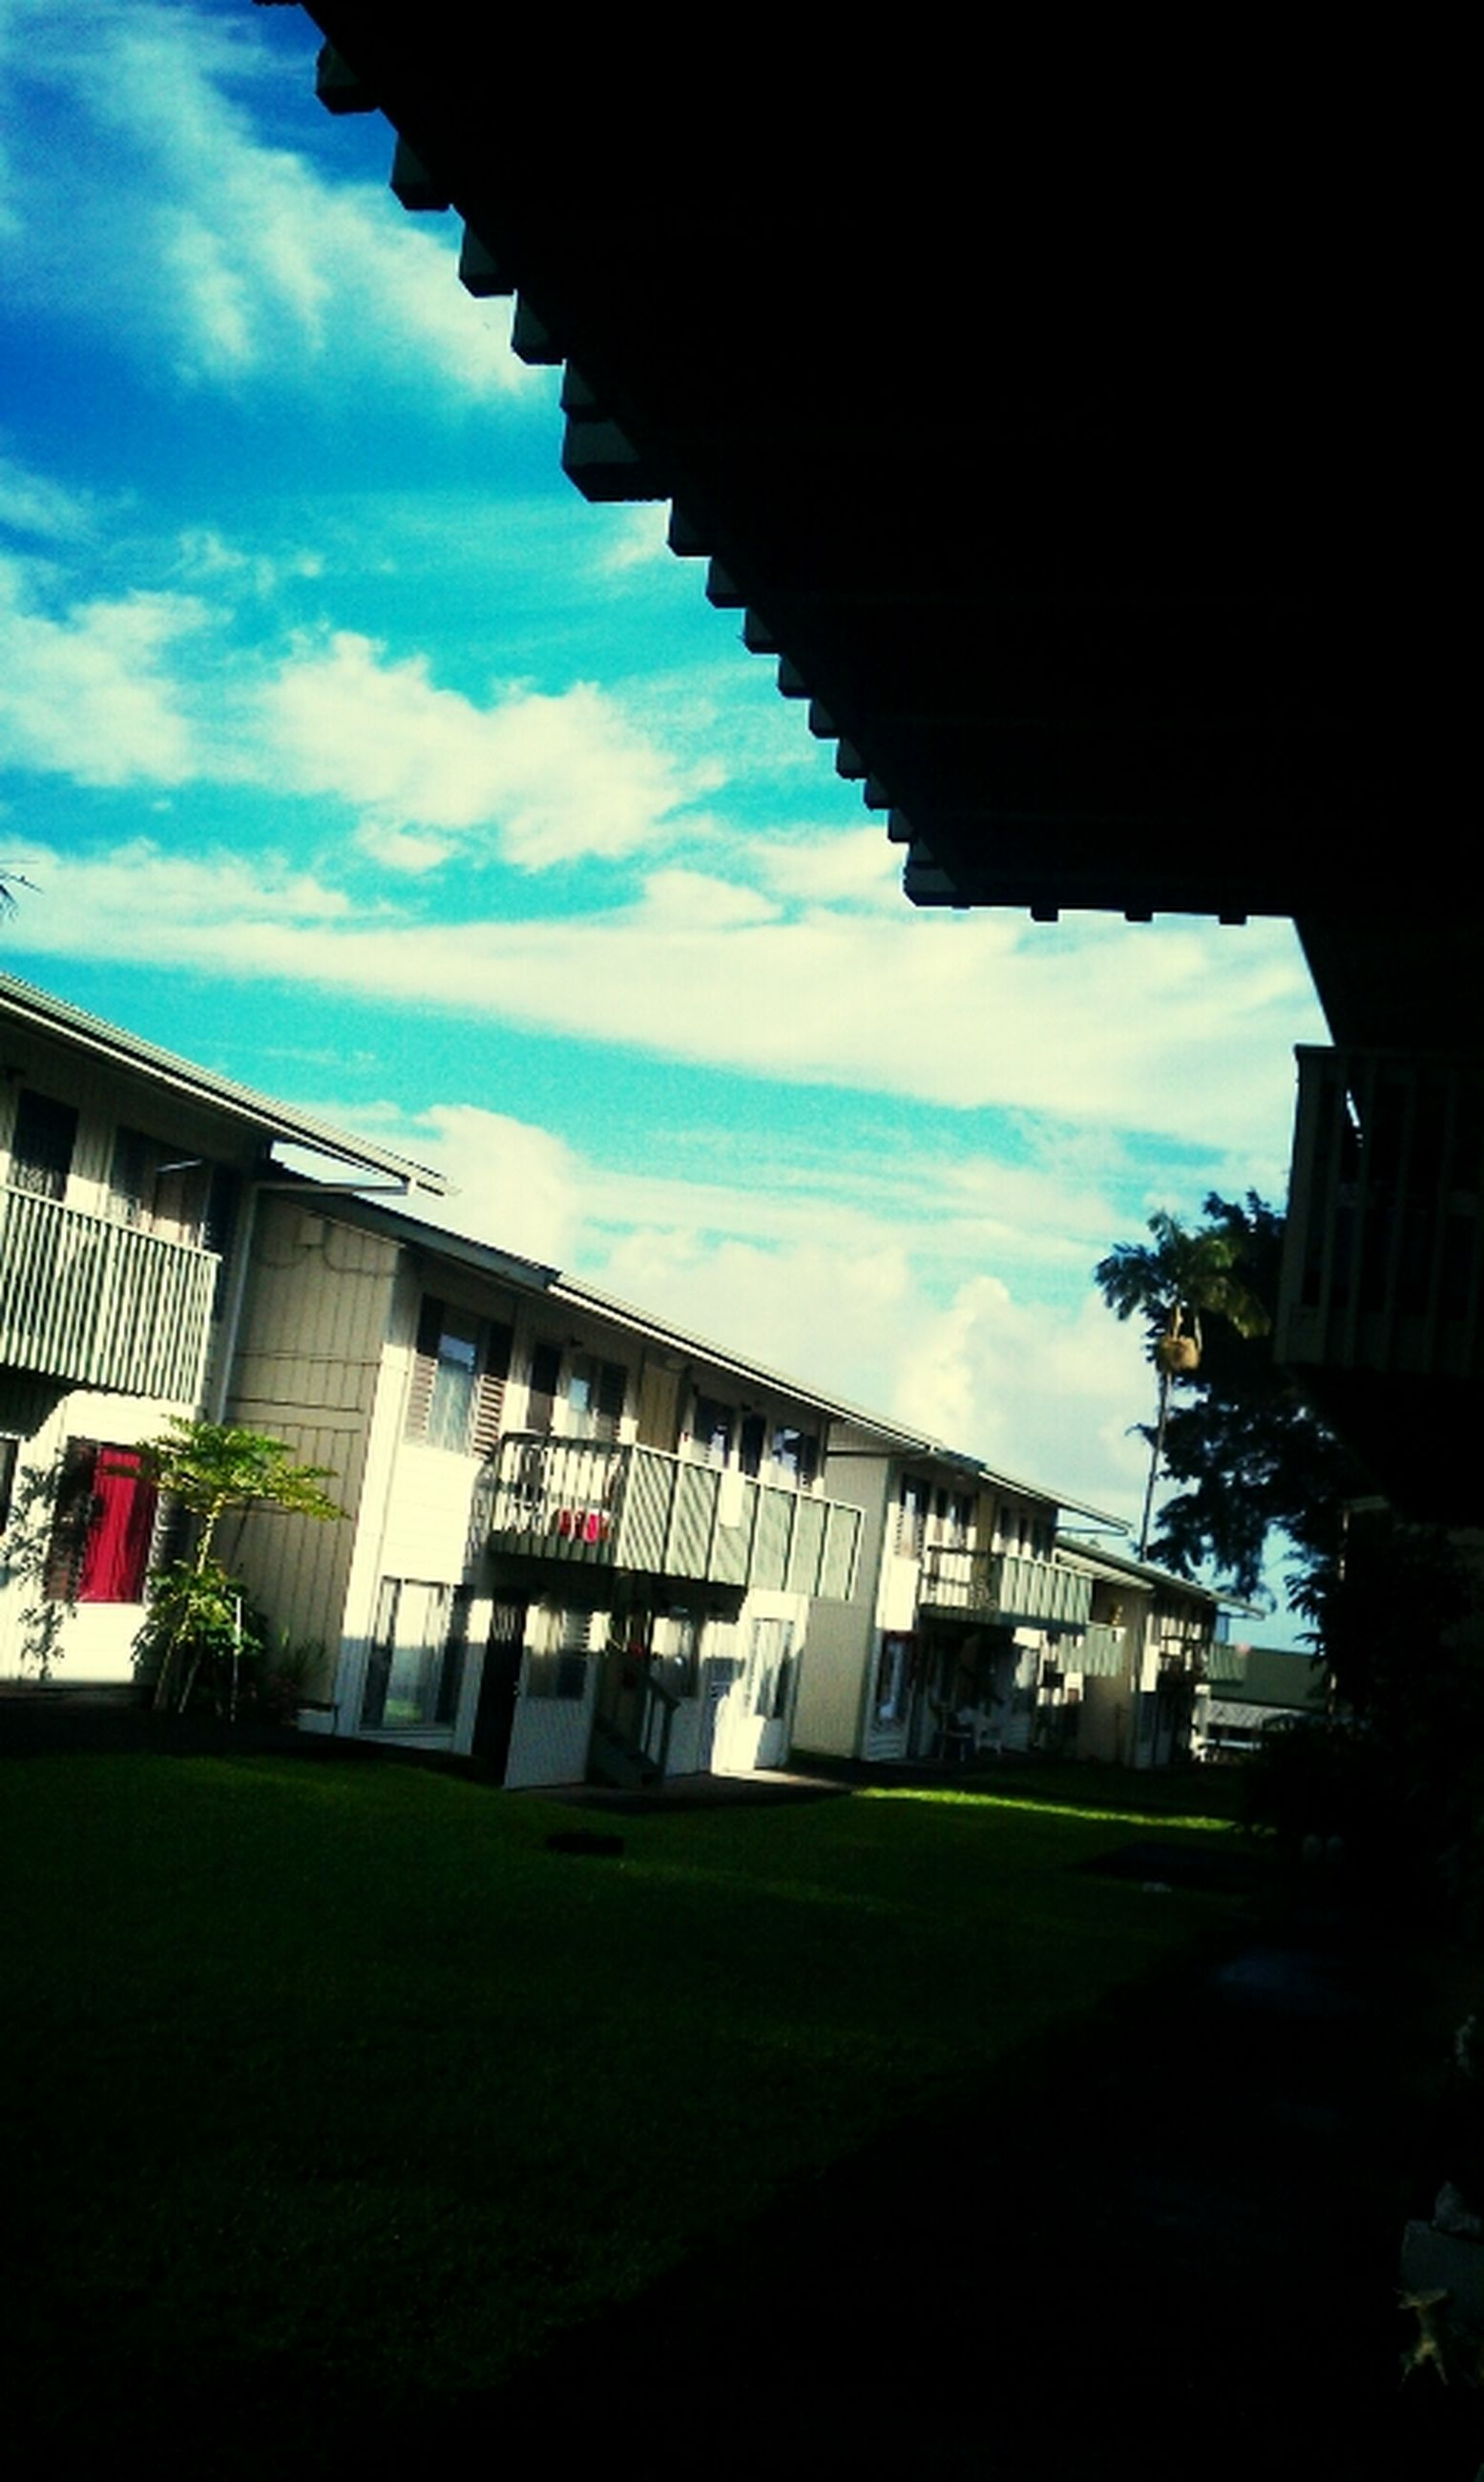 architecture, built structure, building exterior, sky, cloud - sky, house, residential structure, residential building, roof, cloud, cloudy, building, low angle view, outdoors, no people, day, window, nature, sunlight, tree